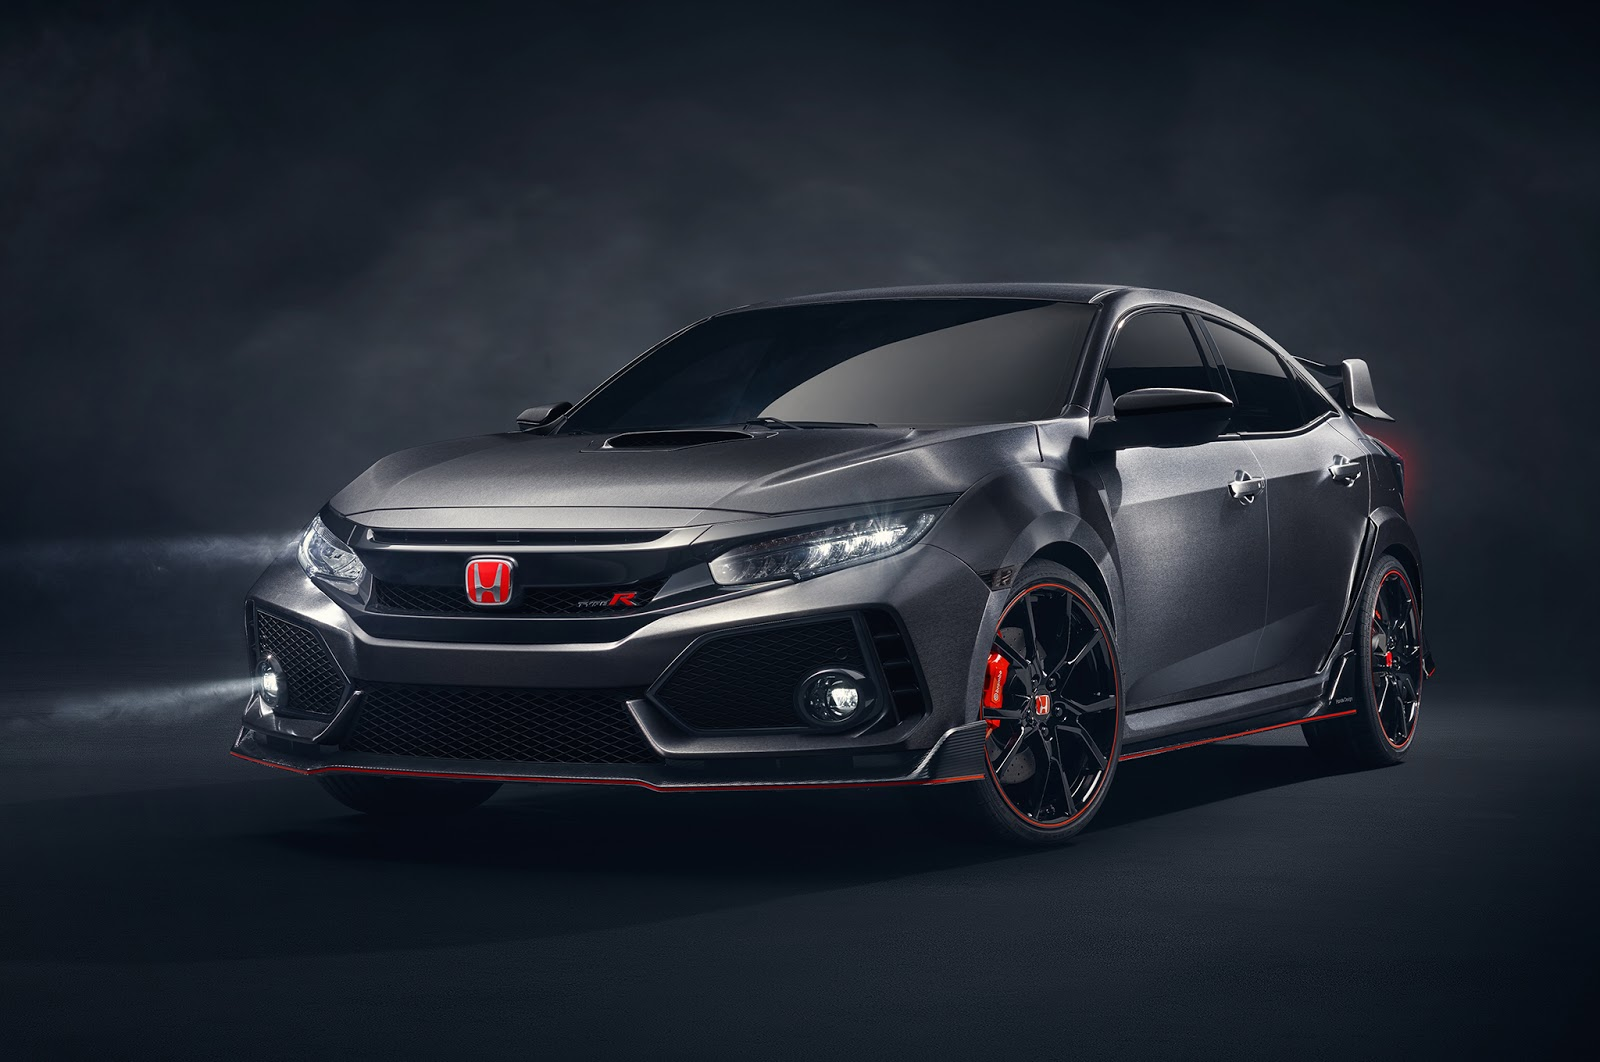 2017 Honda Civic Type R Prototype Bows In At Paris Motor